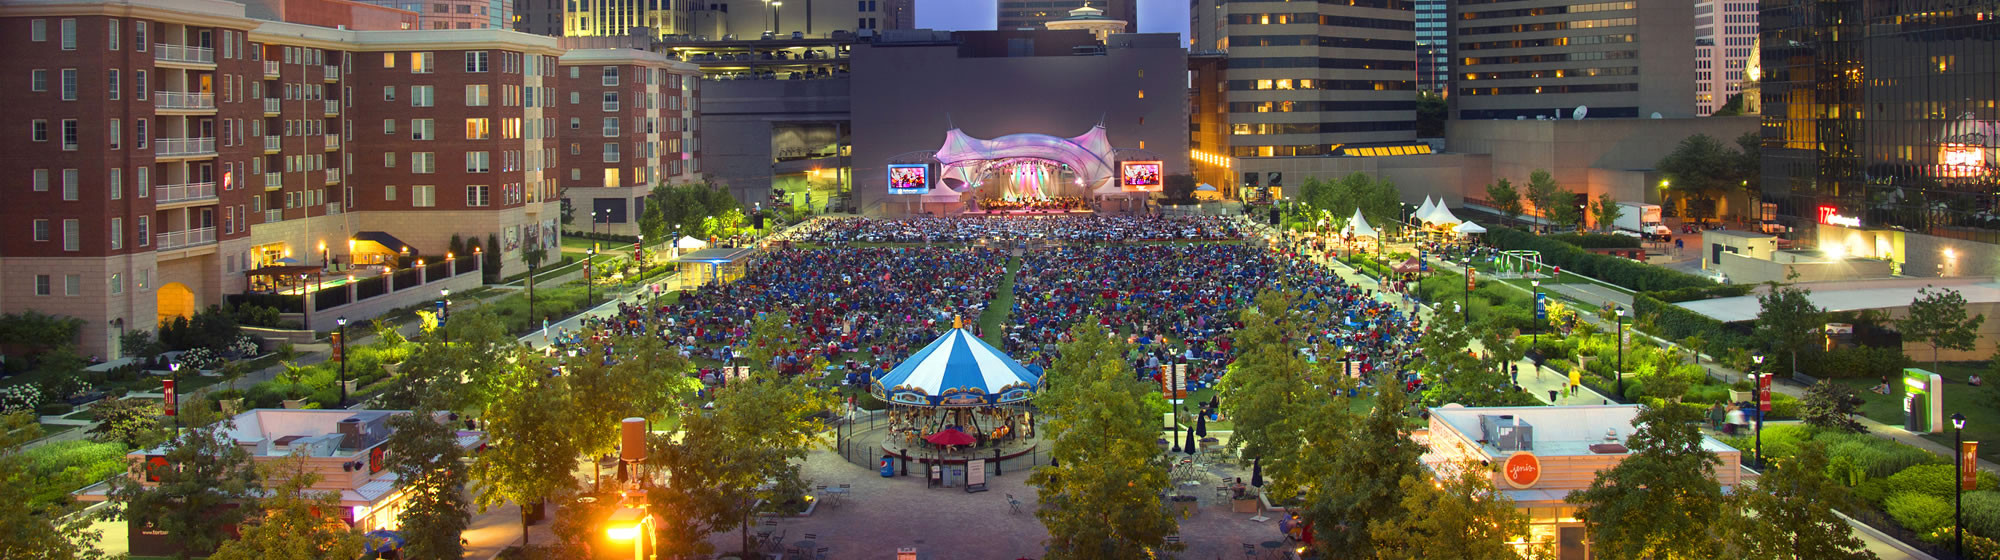 Columbus Commons - Event space and park located in downtown columbus, ohio